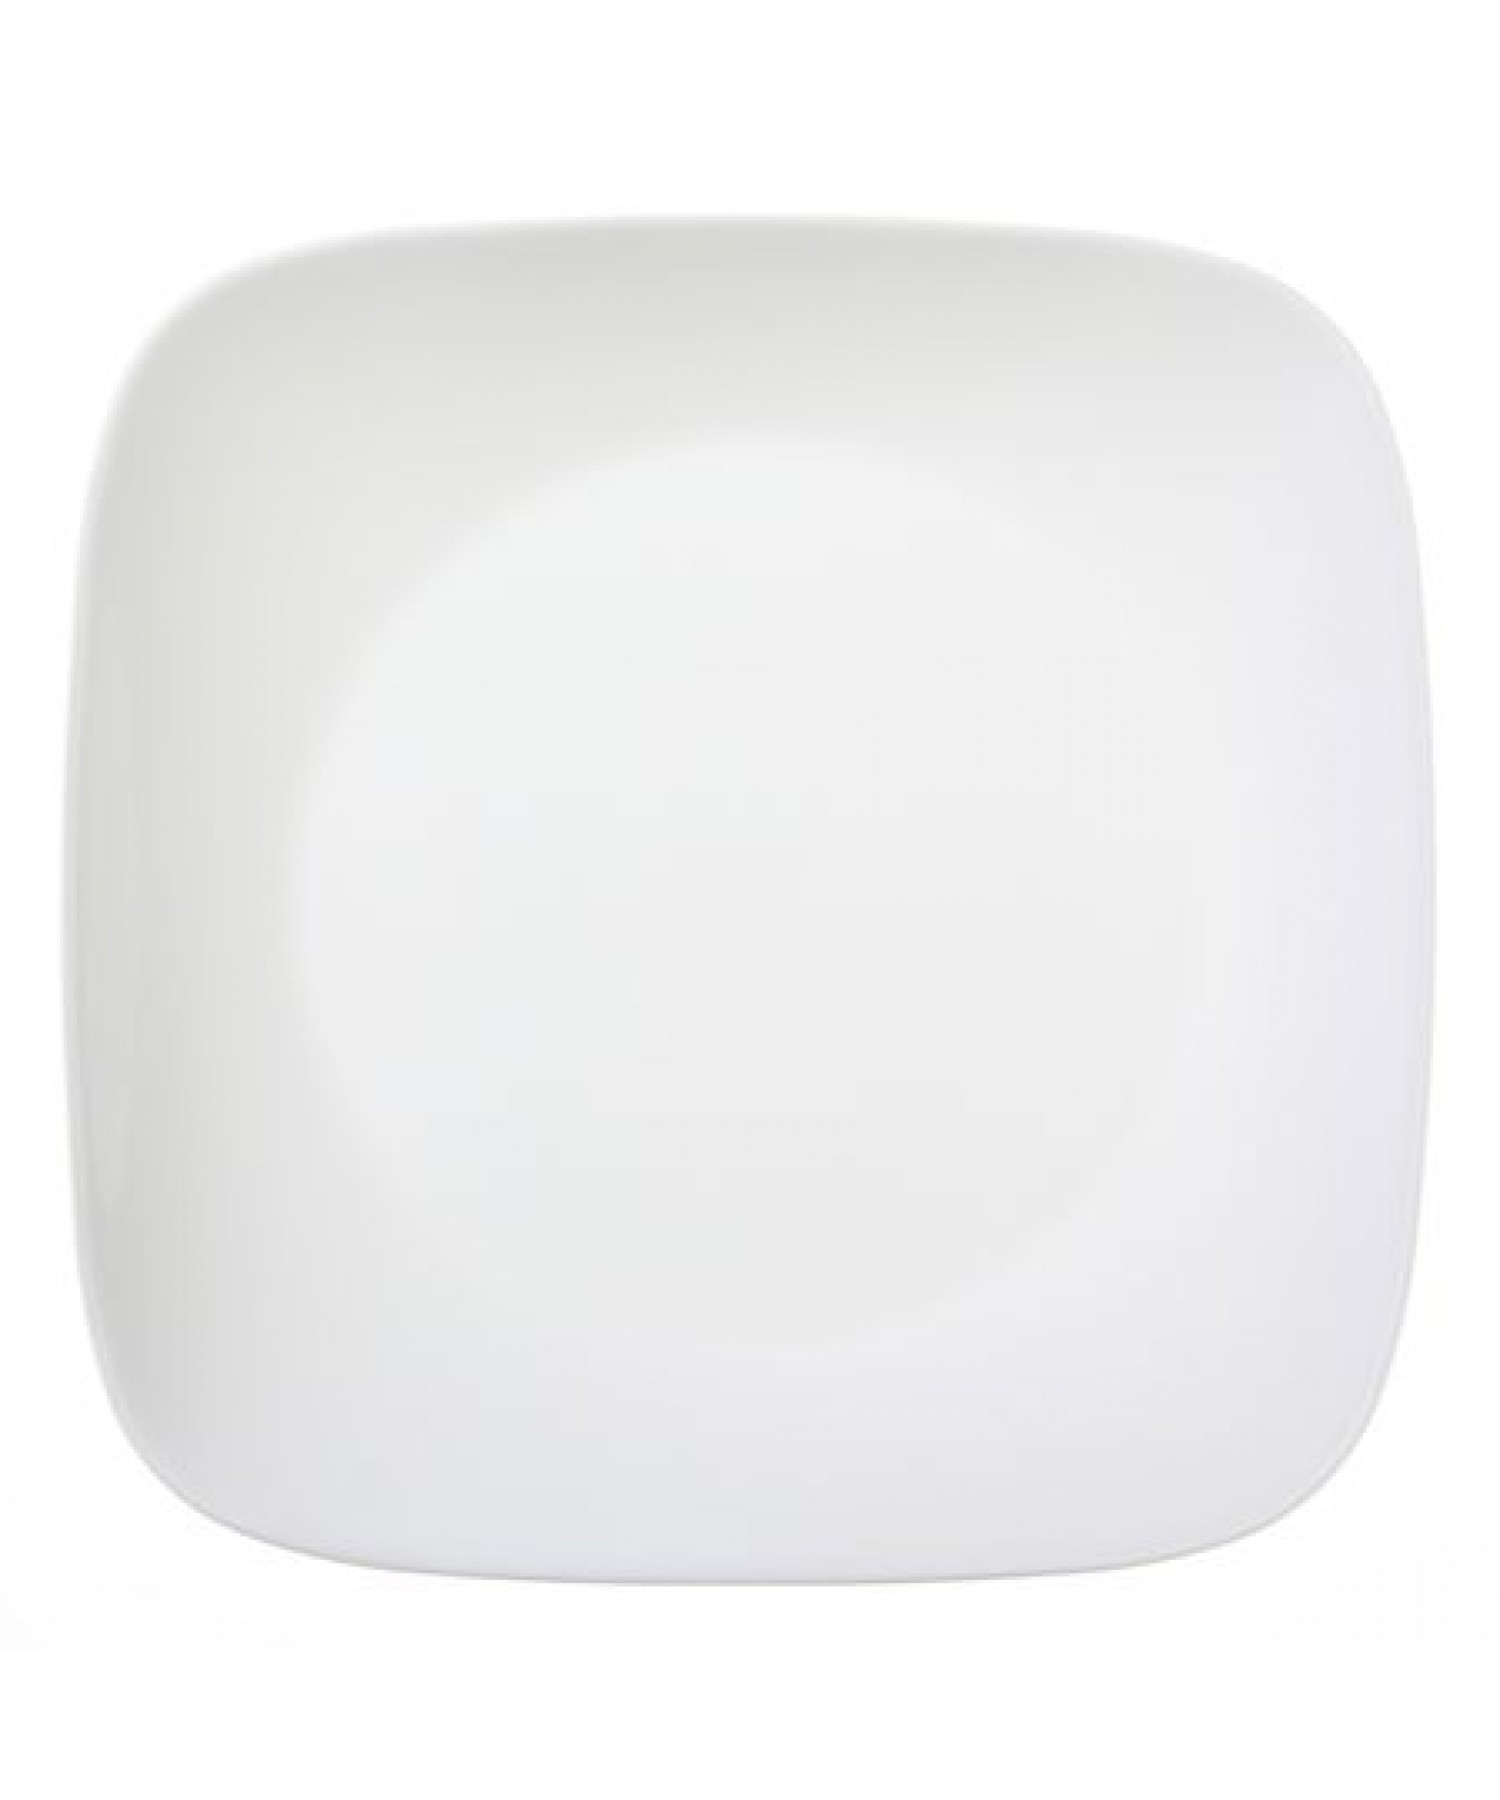 sc 1 st  Bhawani Crystals & Winter Frost White Square Dinner Plate (Set of 6)